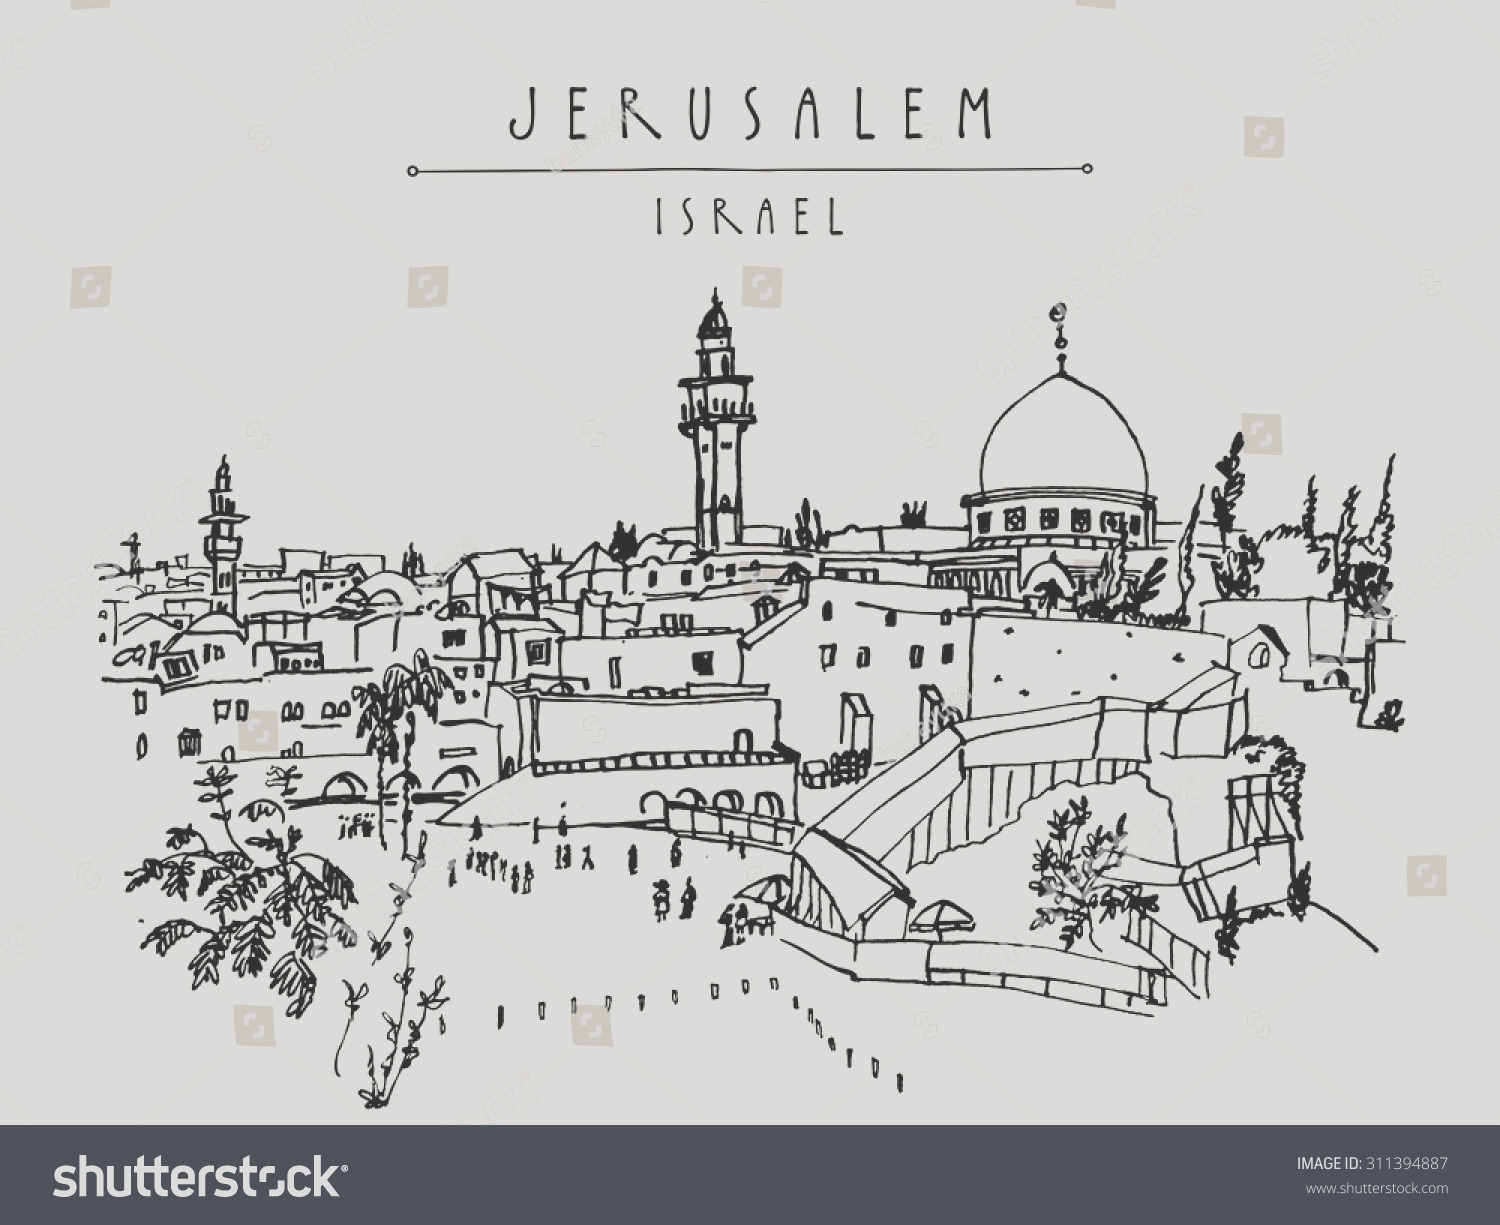 stock vector jerusalem israel old city skyline wailing wall handmade drawing isolated in vector postcard or